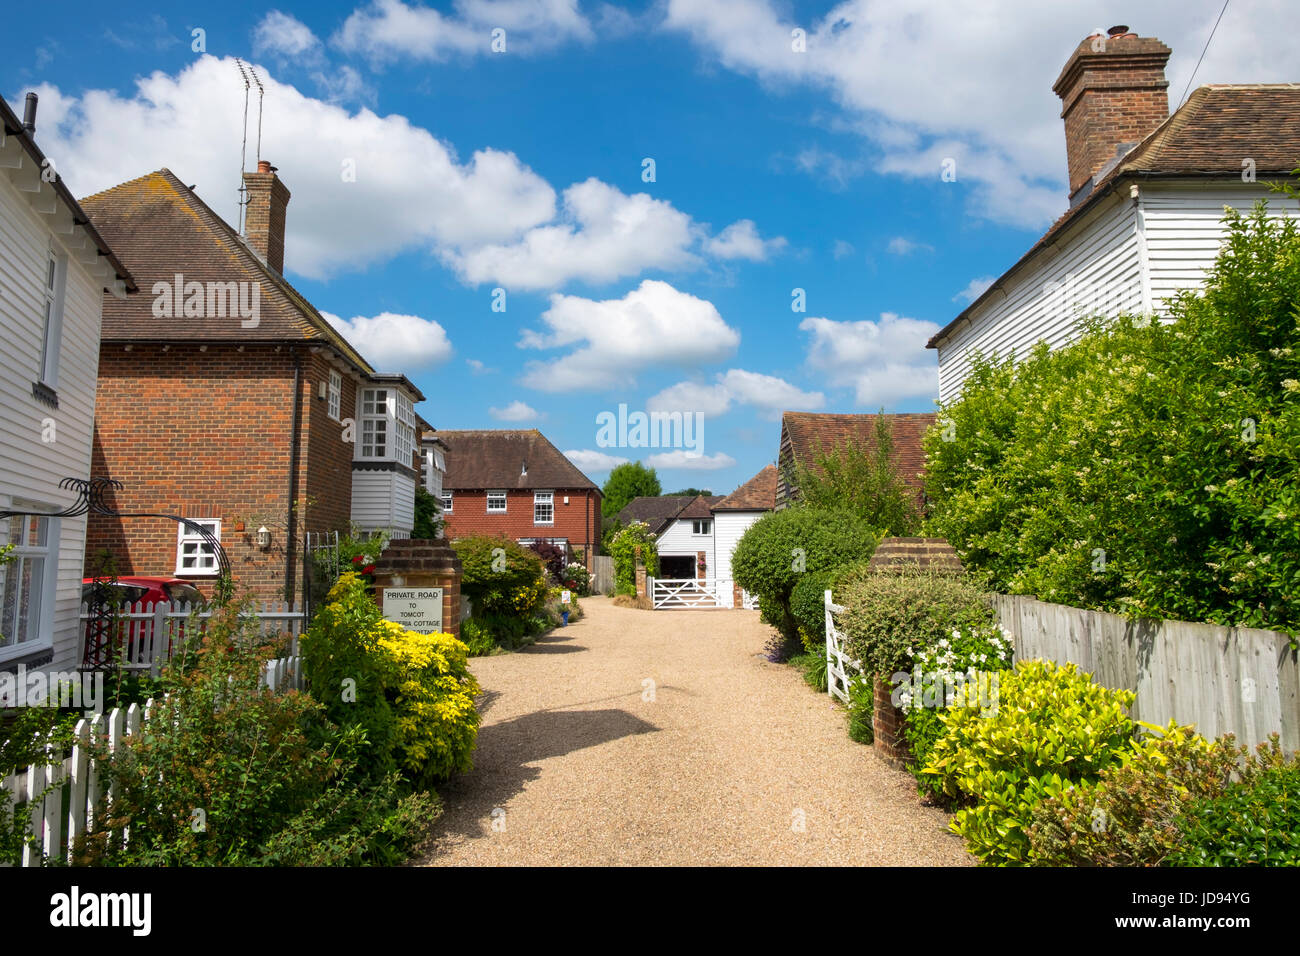 English British Countryside Cottages Houses Blue Sky Puffy